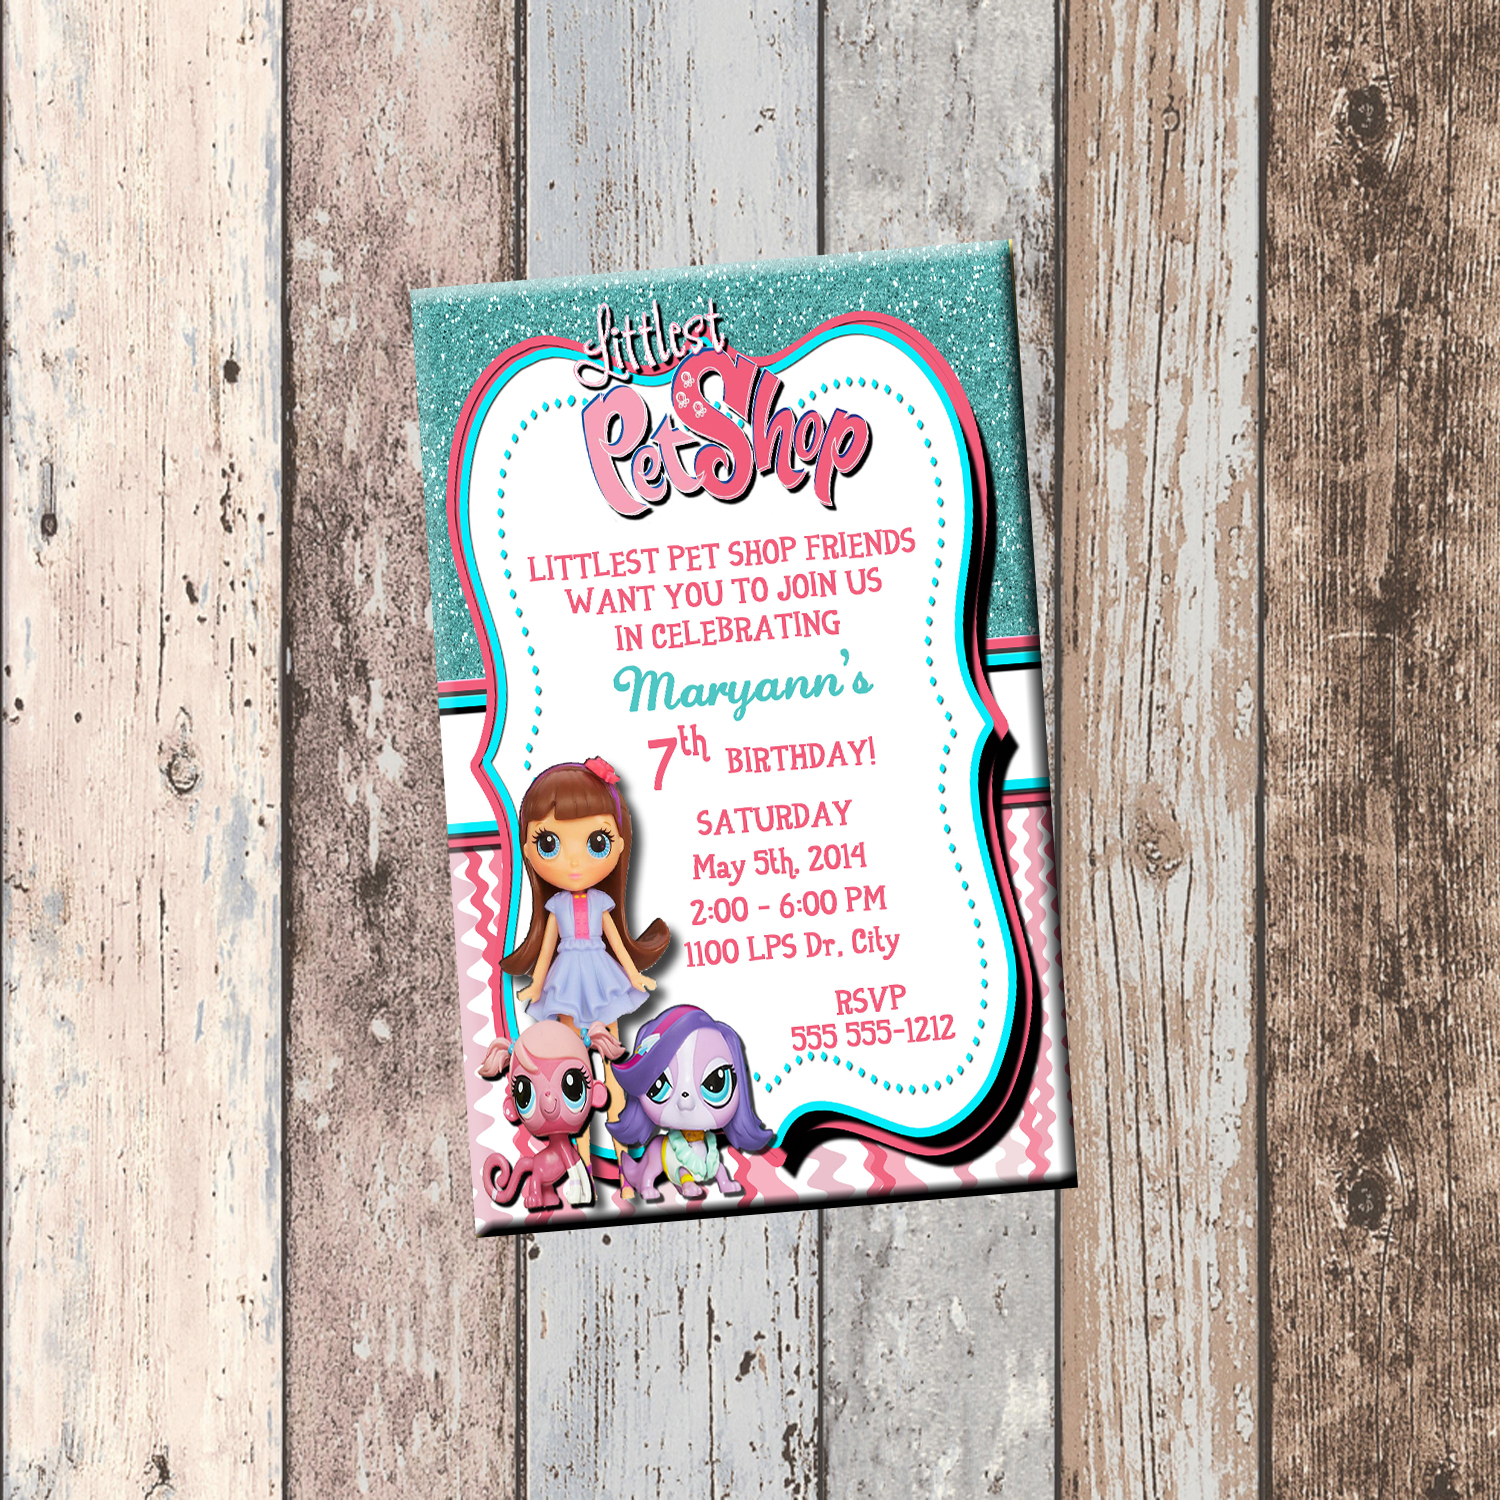 Littlest Pet Shop Personalized Birthday Invitation 1 Sided Card Party LPS